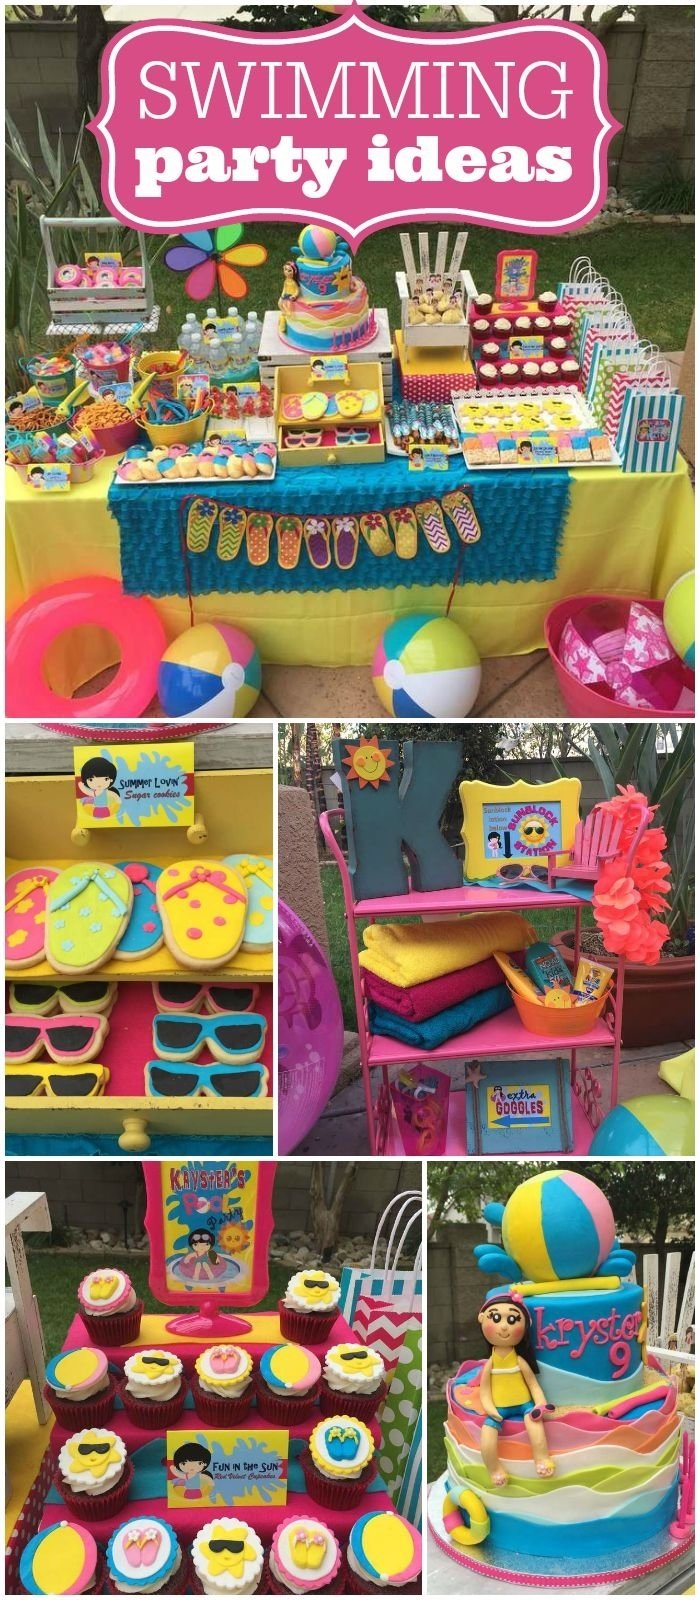 10 Pretty Pool Party Ideas For 13 Year Olds 4542 best party themes images on pinterest birthdays birthday